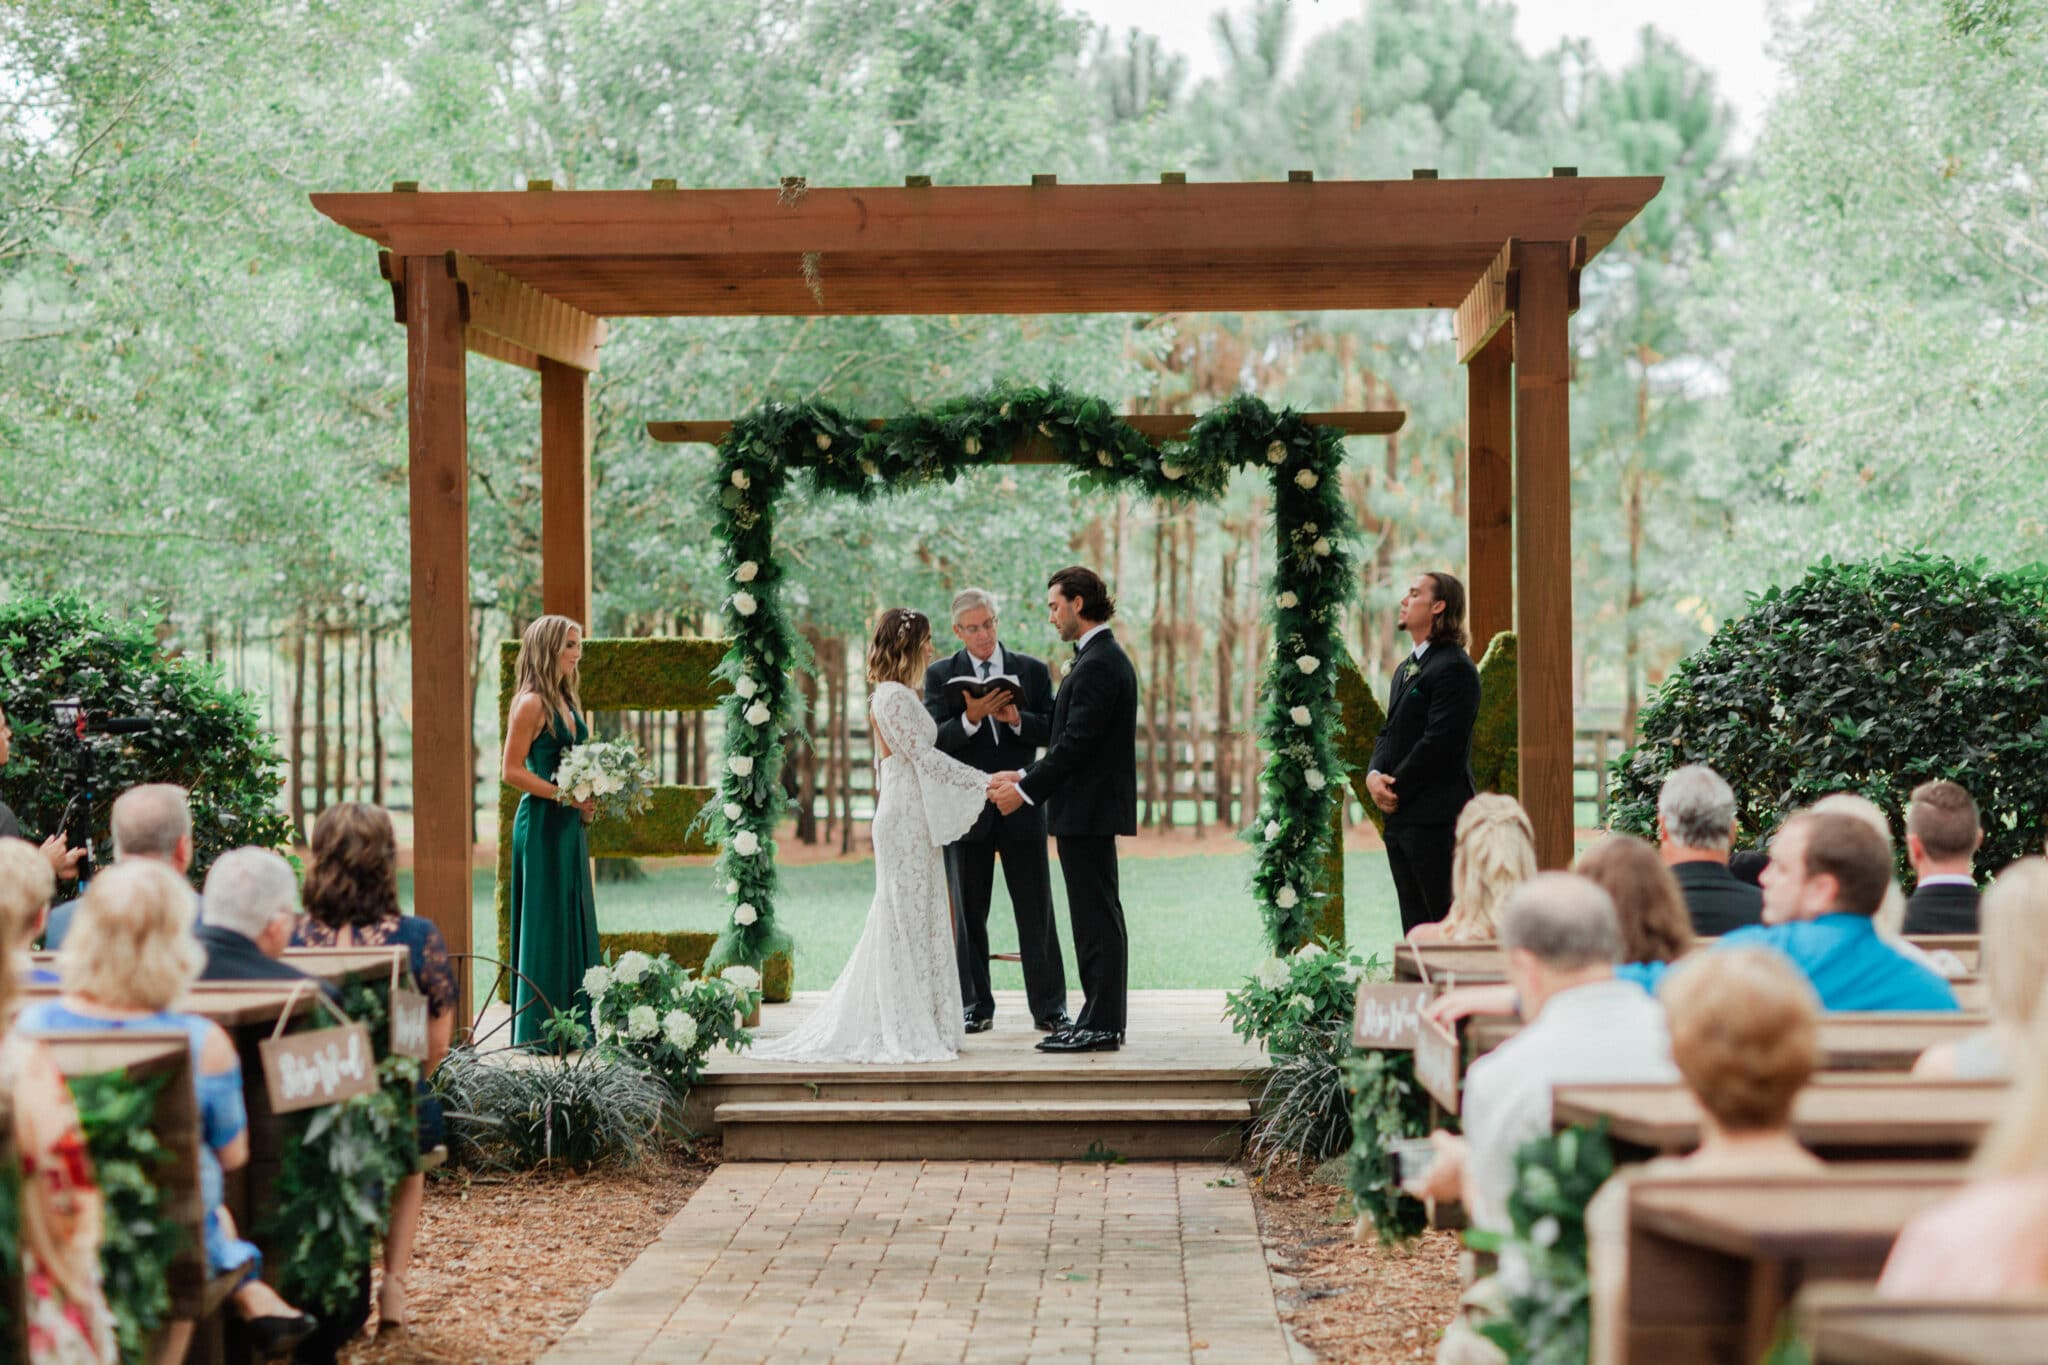 green garland with white flowers used as arch behind couple during wedding ceremony